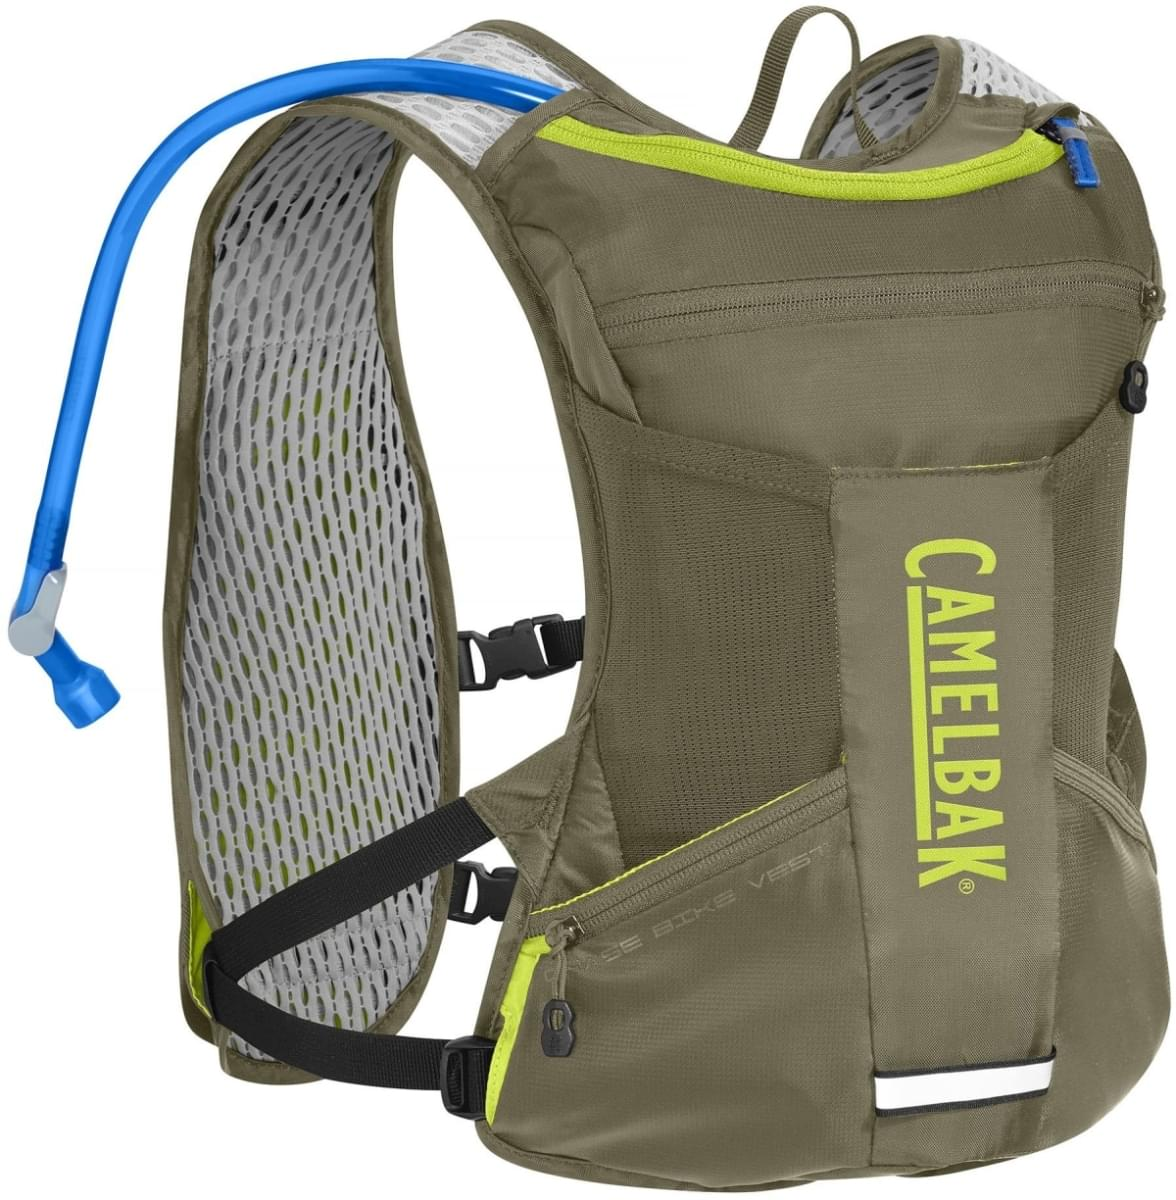 Camelbak Chase Bike Vest - Burnt Olive/Lime Punch uni